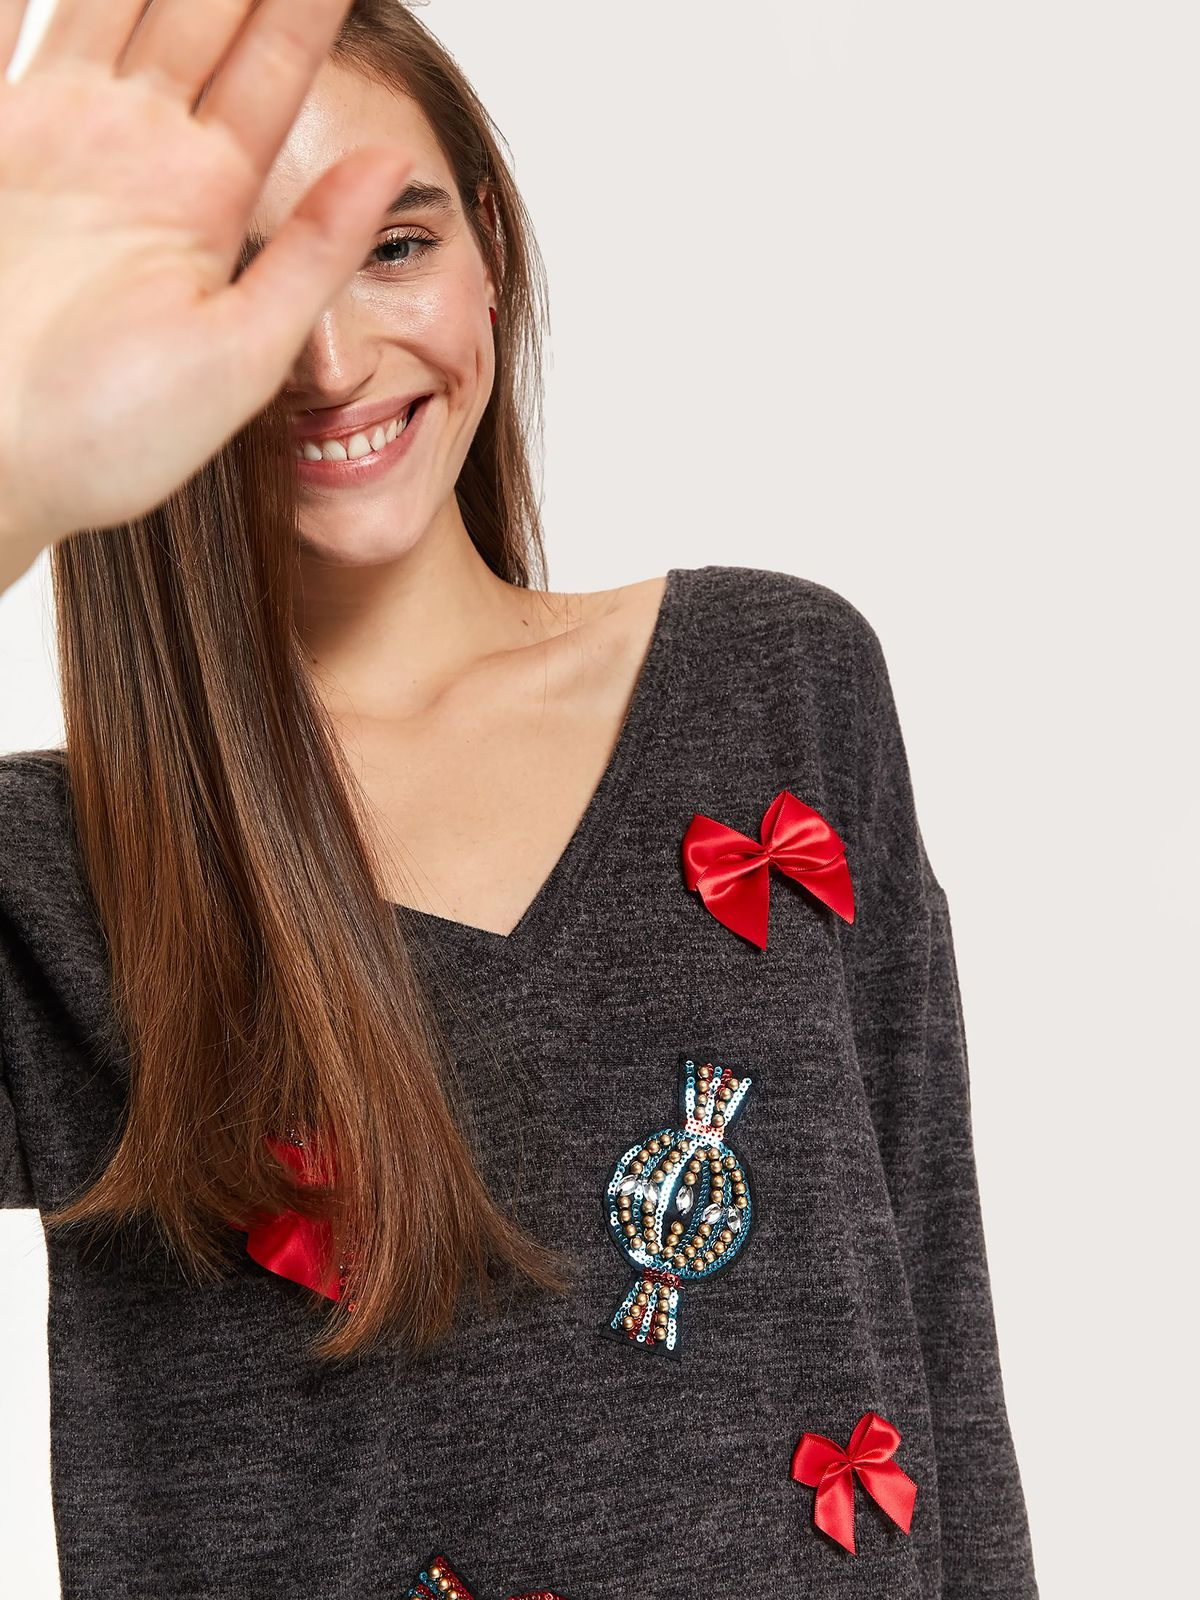 Darkgrey women`s blouse casual knitted with bow accessories